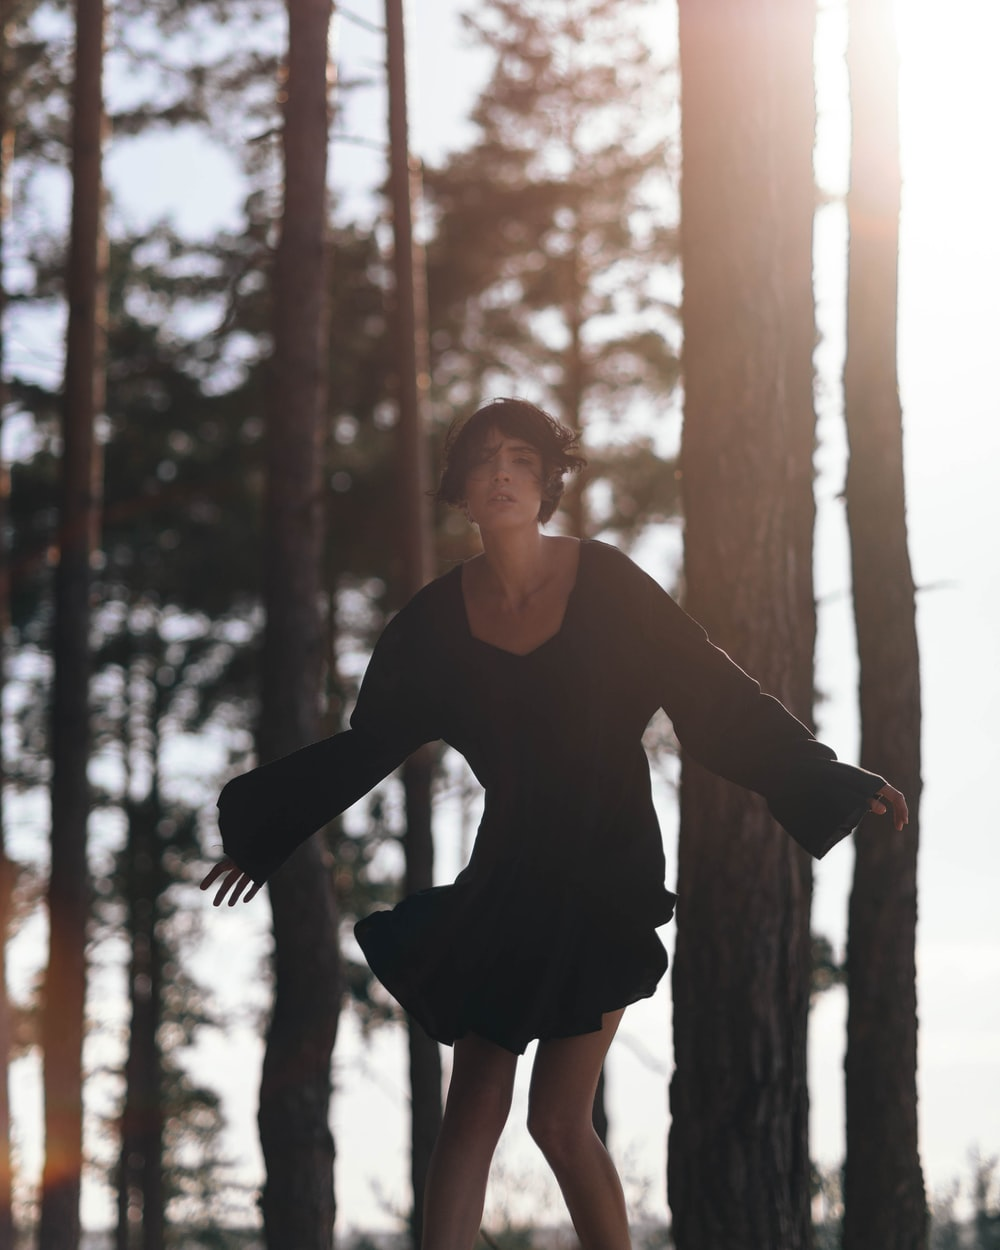 woman in black long sleeve shirt standing on brown wooden post during daytime